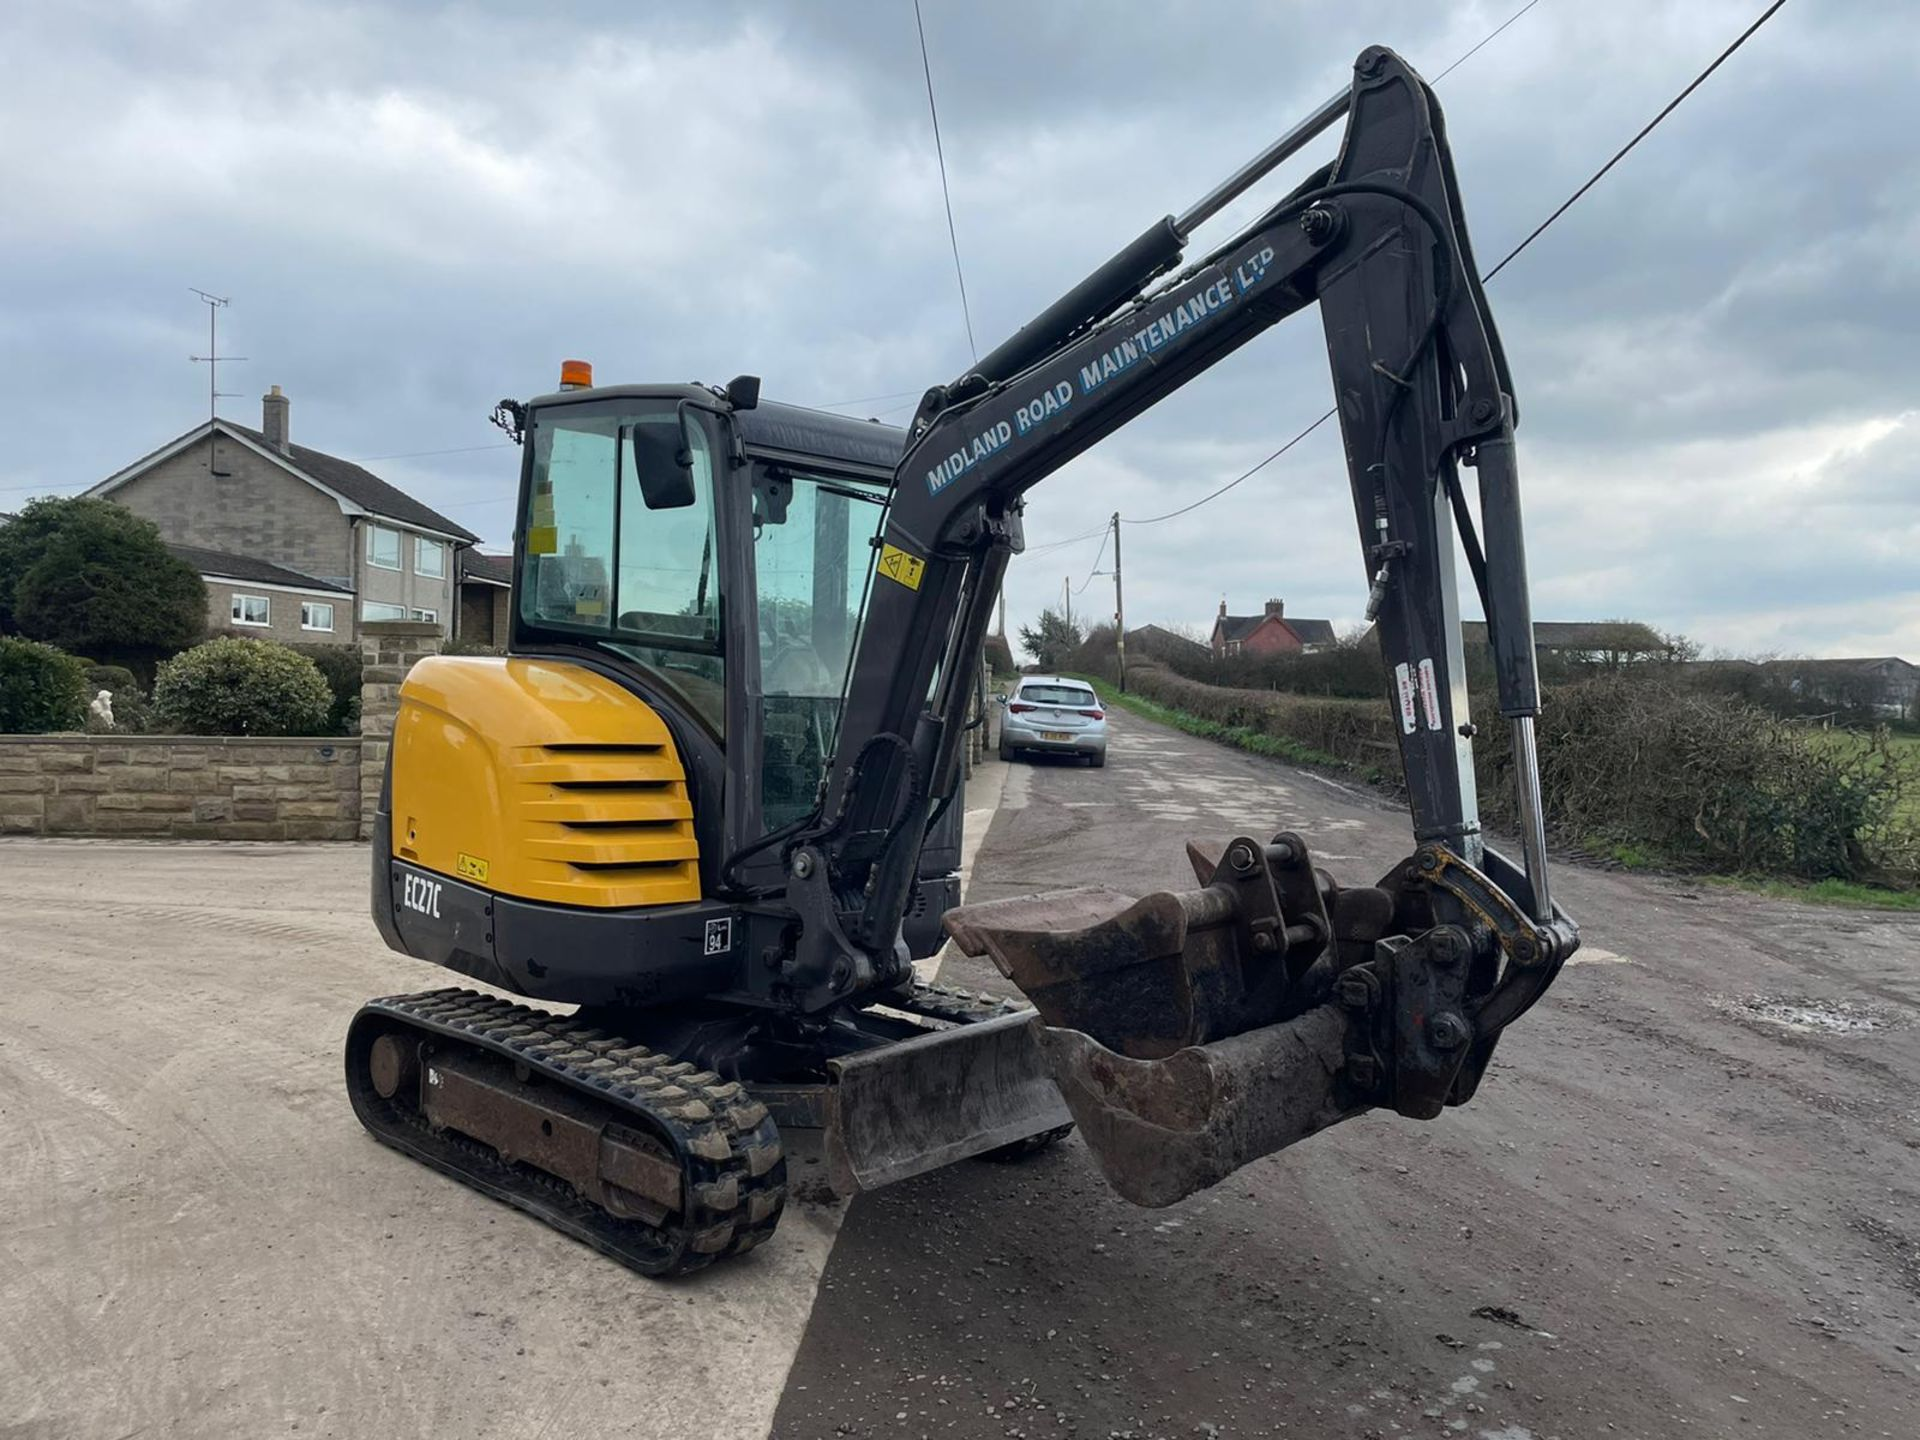 2013 VOLVO EC27C EXCAVATOR RUNS, DRIVES AND DIGS, X3 BUCKETS INCLUDED - Image 6 of 8